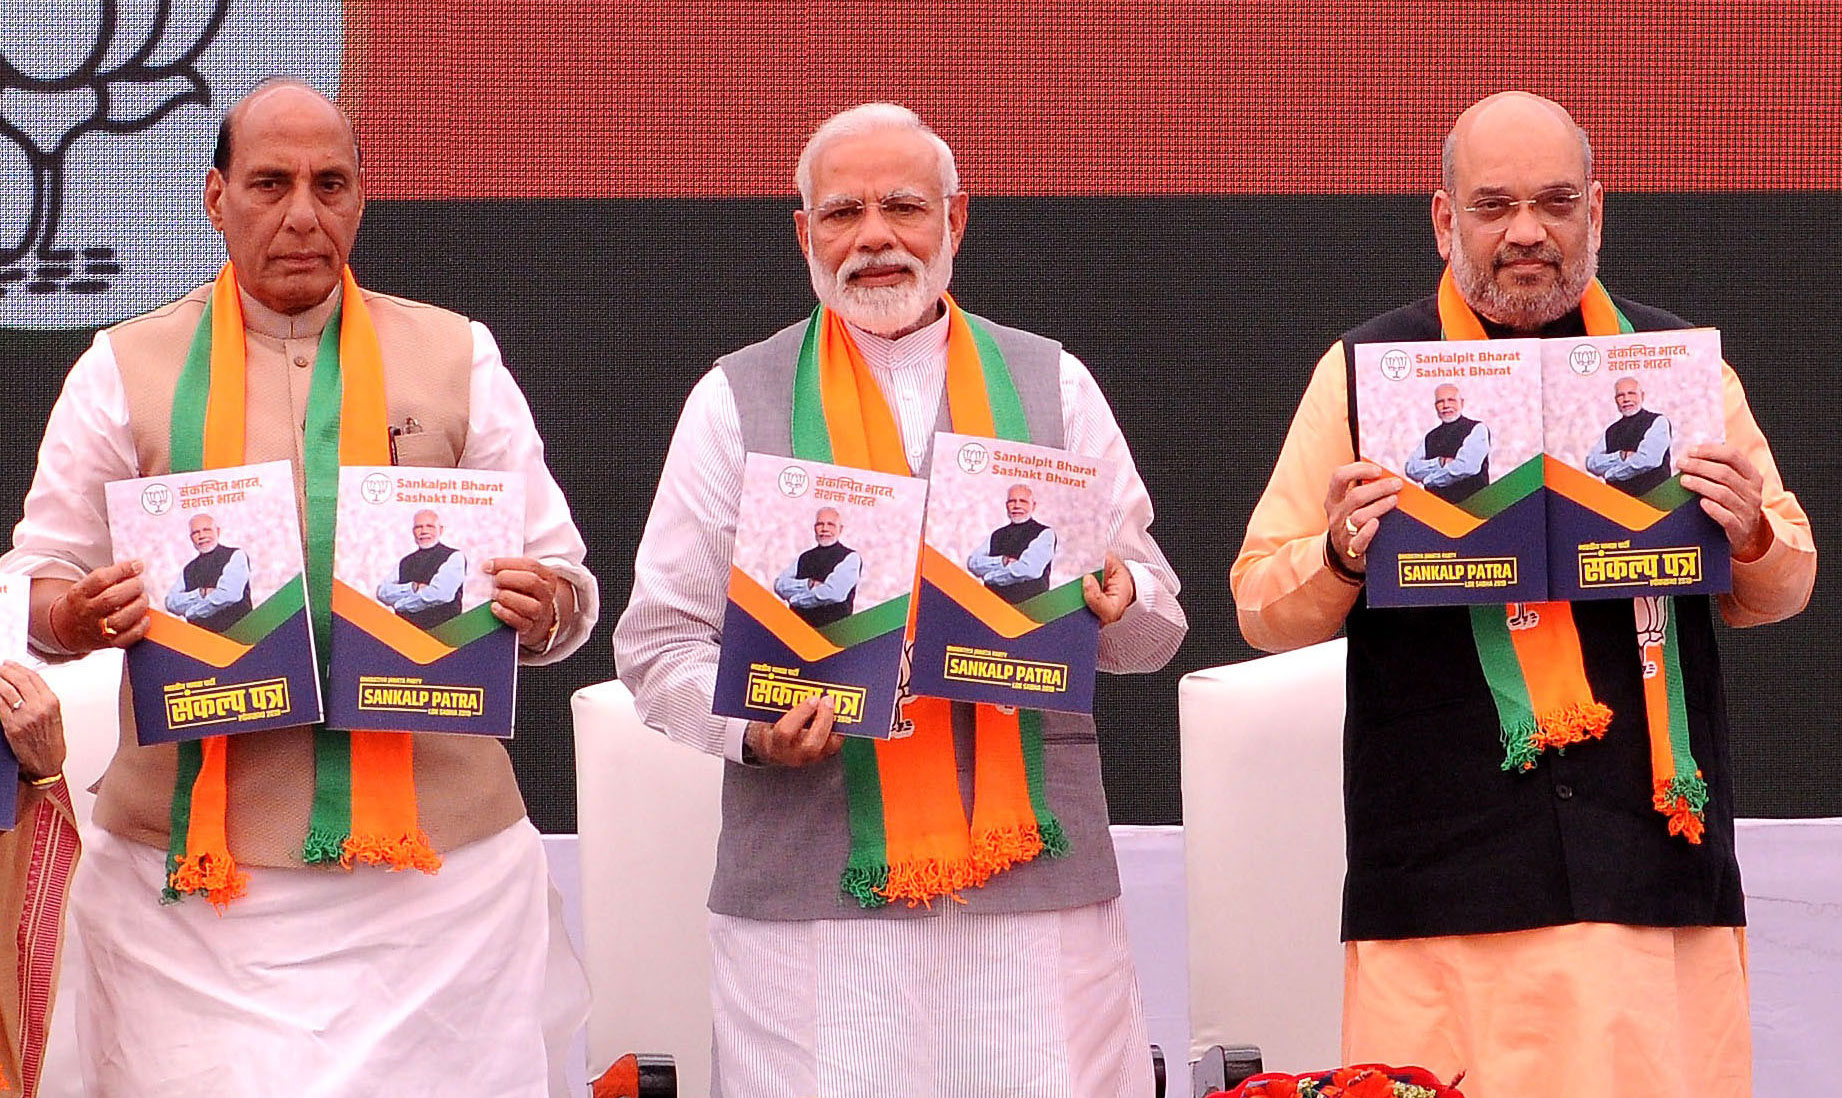 Prime Minister Narendra Modi, Amit Shah (right) and Rajnath Singh (left) during the release of BJP's manifesto (Sankalp Patra) for Lok Sabha elections 2019, in New Delhi on April 8, 2019.